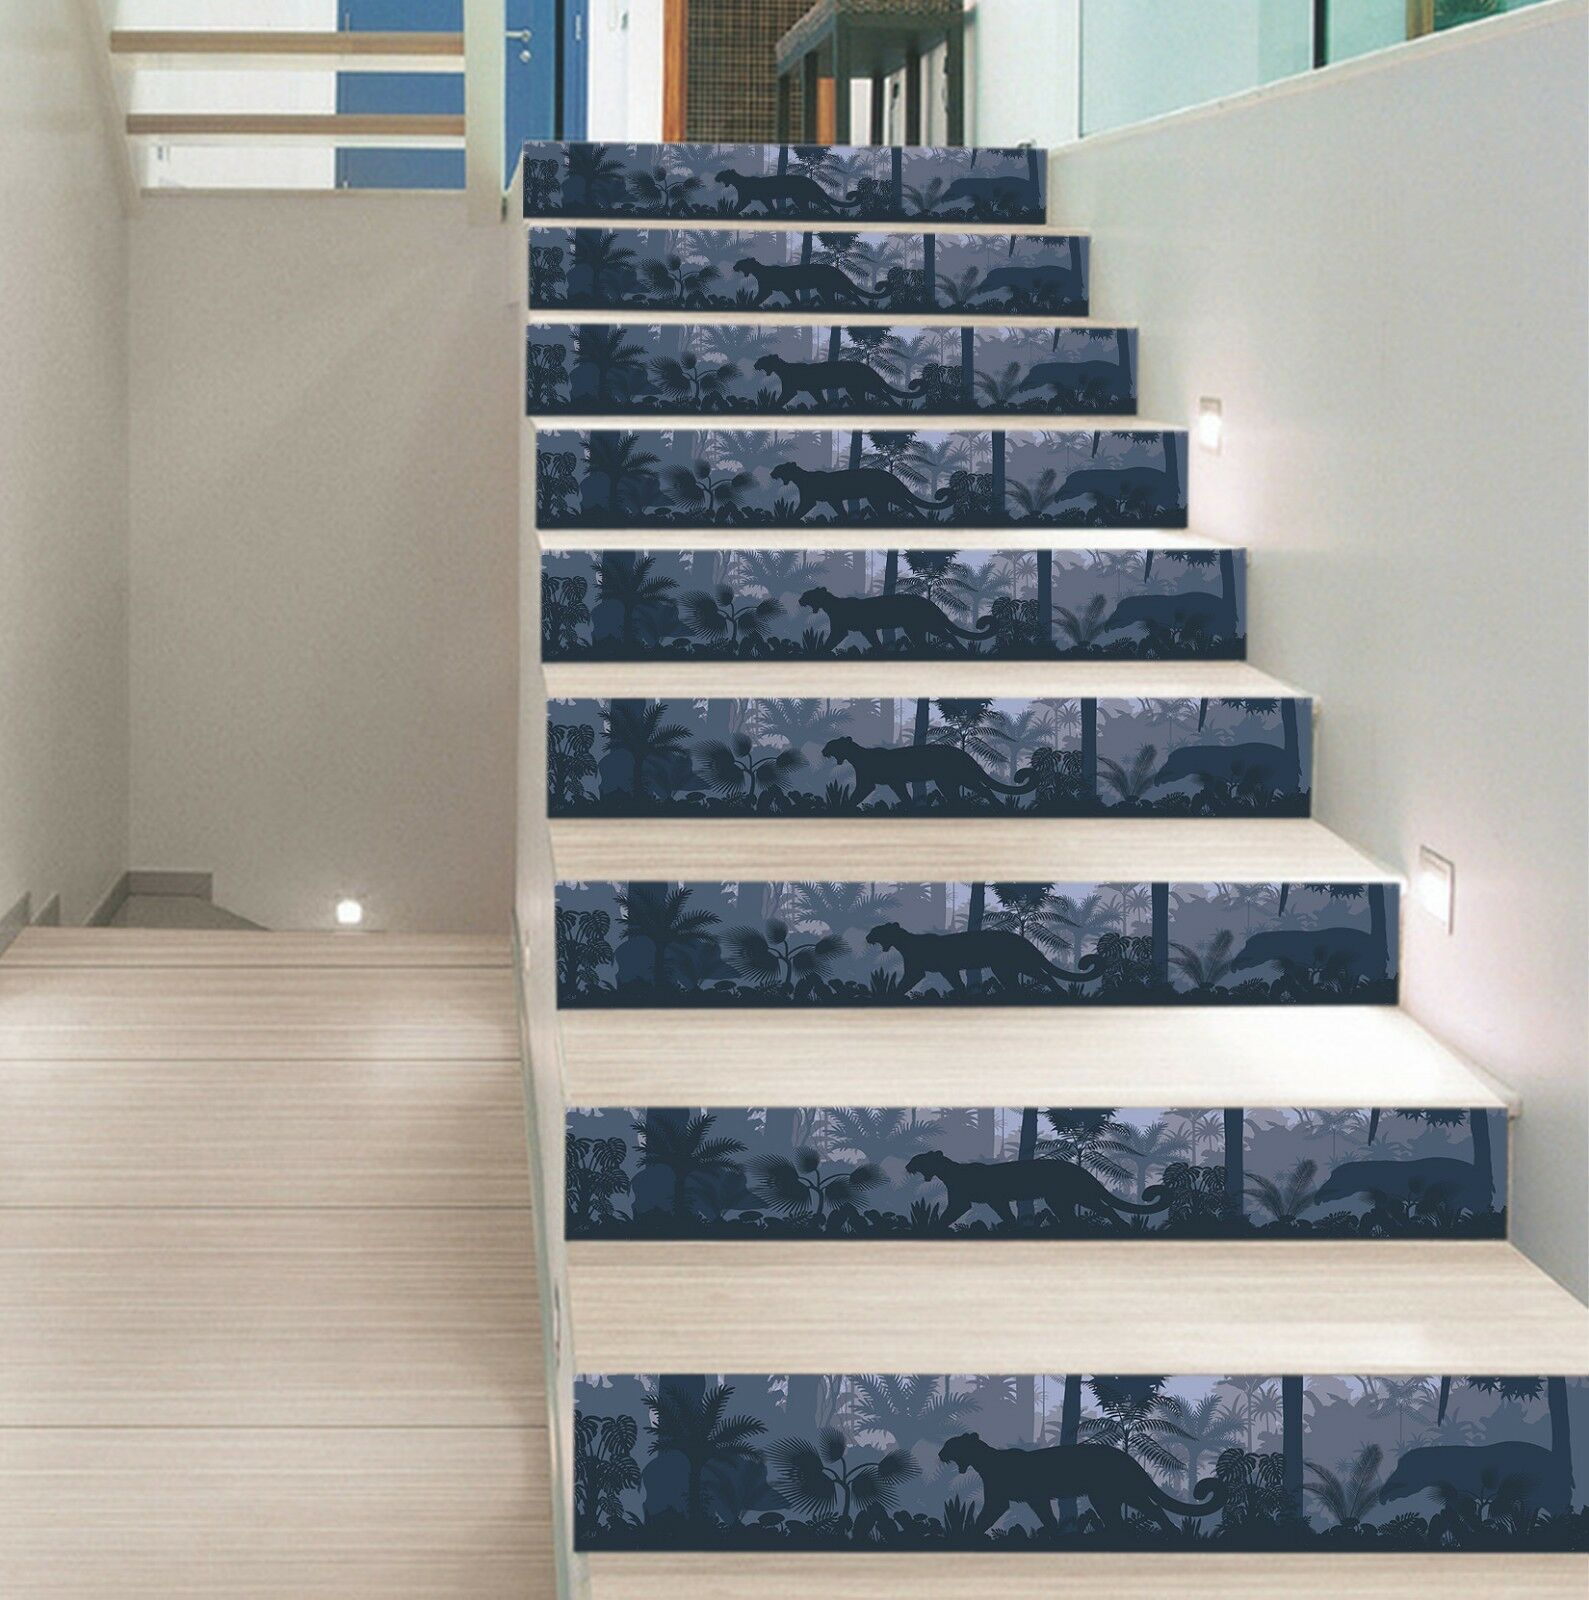 3D Woods Leopard 8 Tile Marble Stair Risers Photo Mural Vinyl Decal Wallpaper